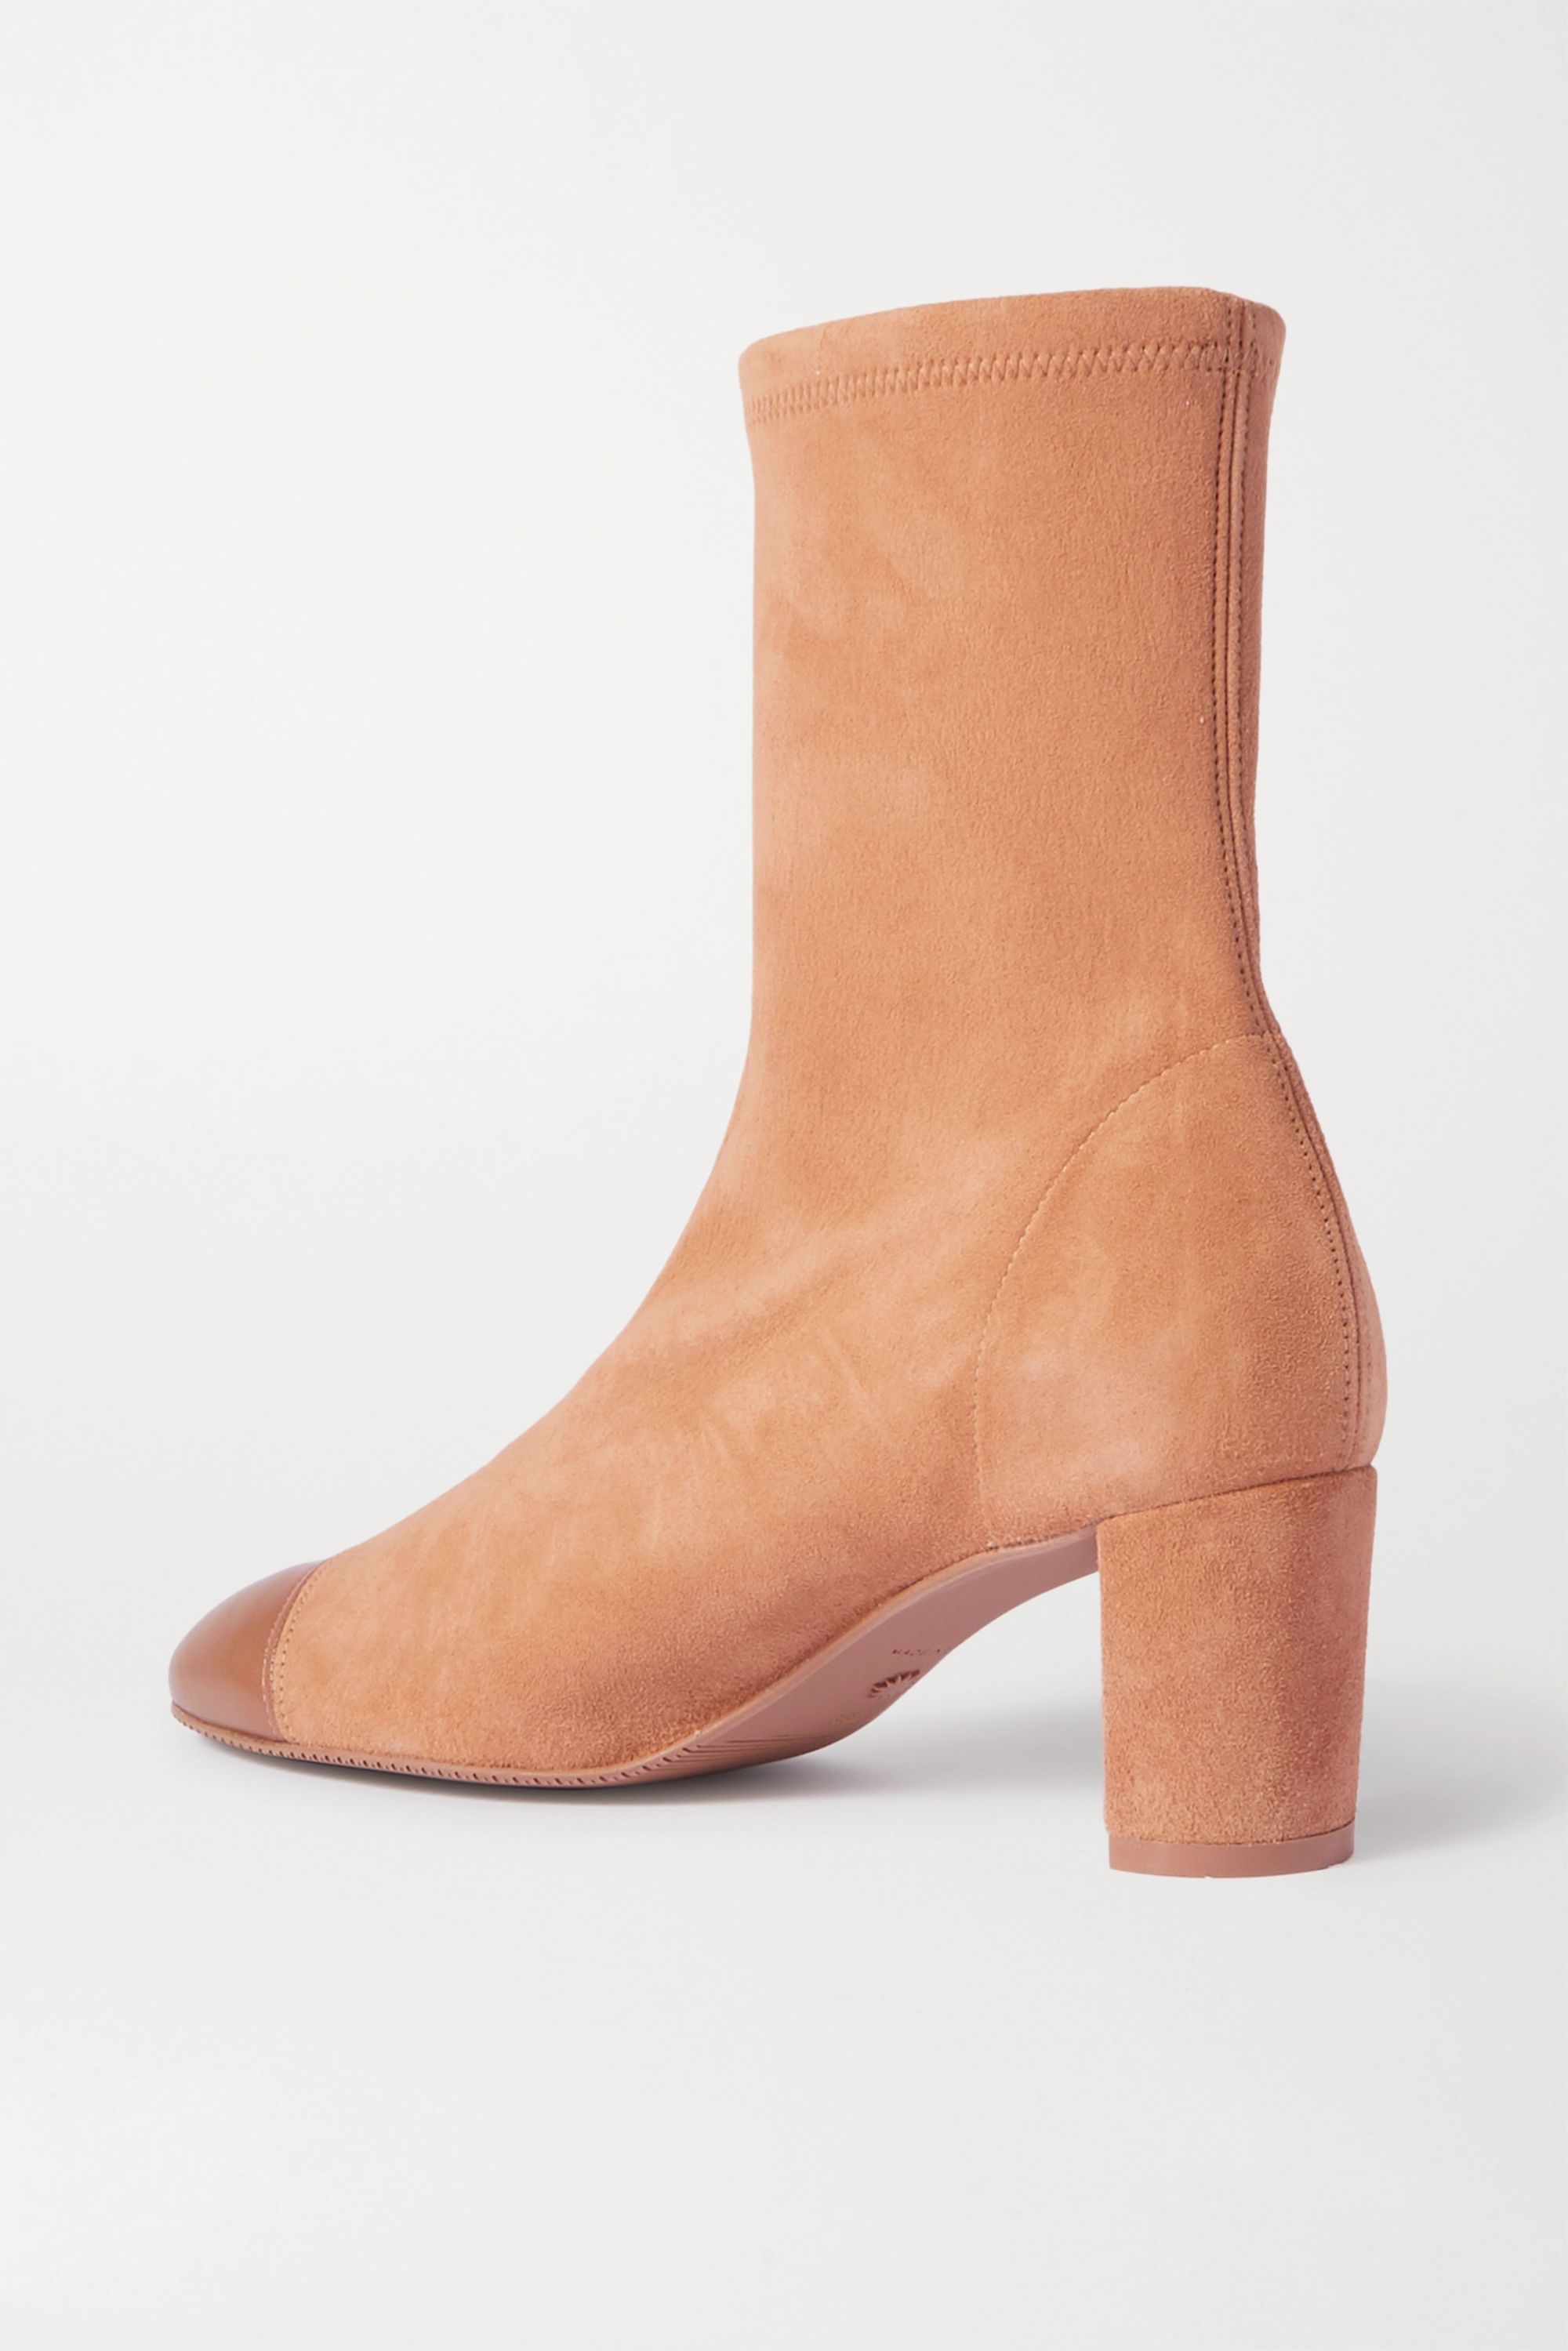 Stuart Weitzman Fernanda suede and leather ankle boots